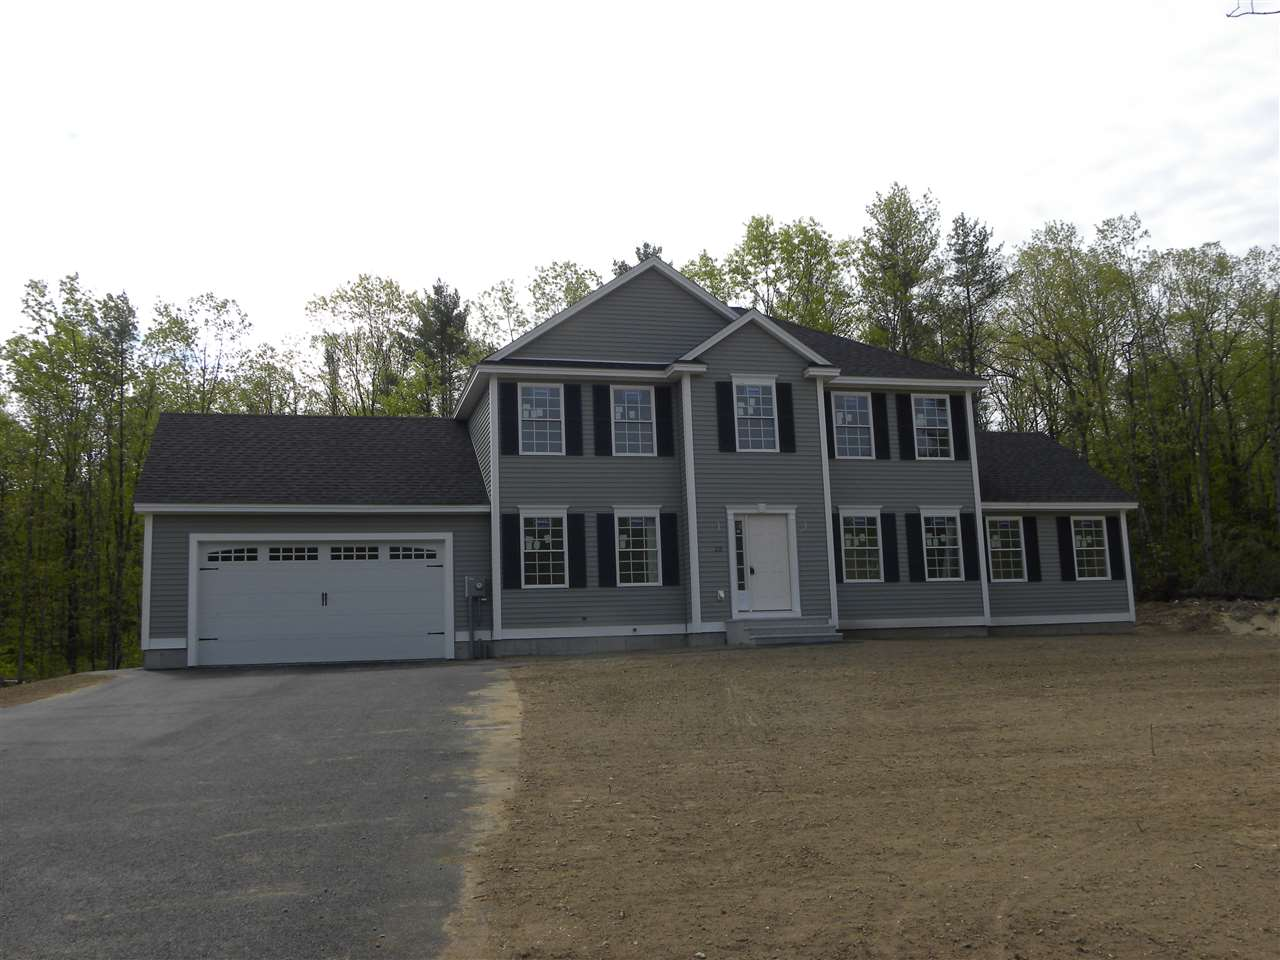 Photo of 22 Sandybrook Drive Raymond NH 03077